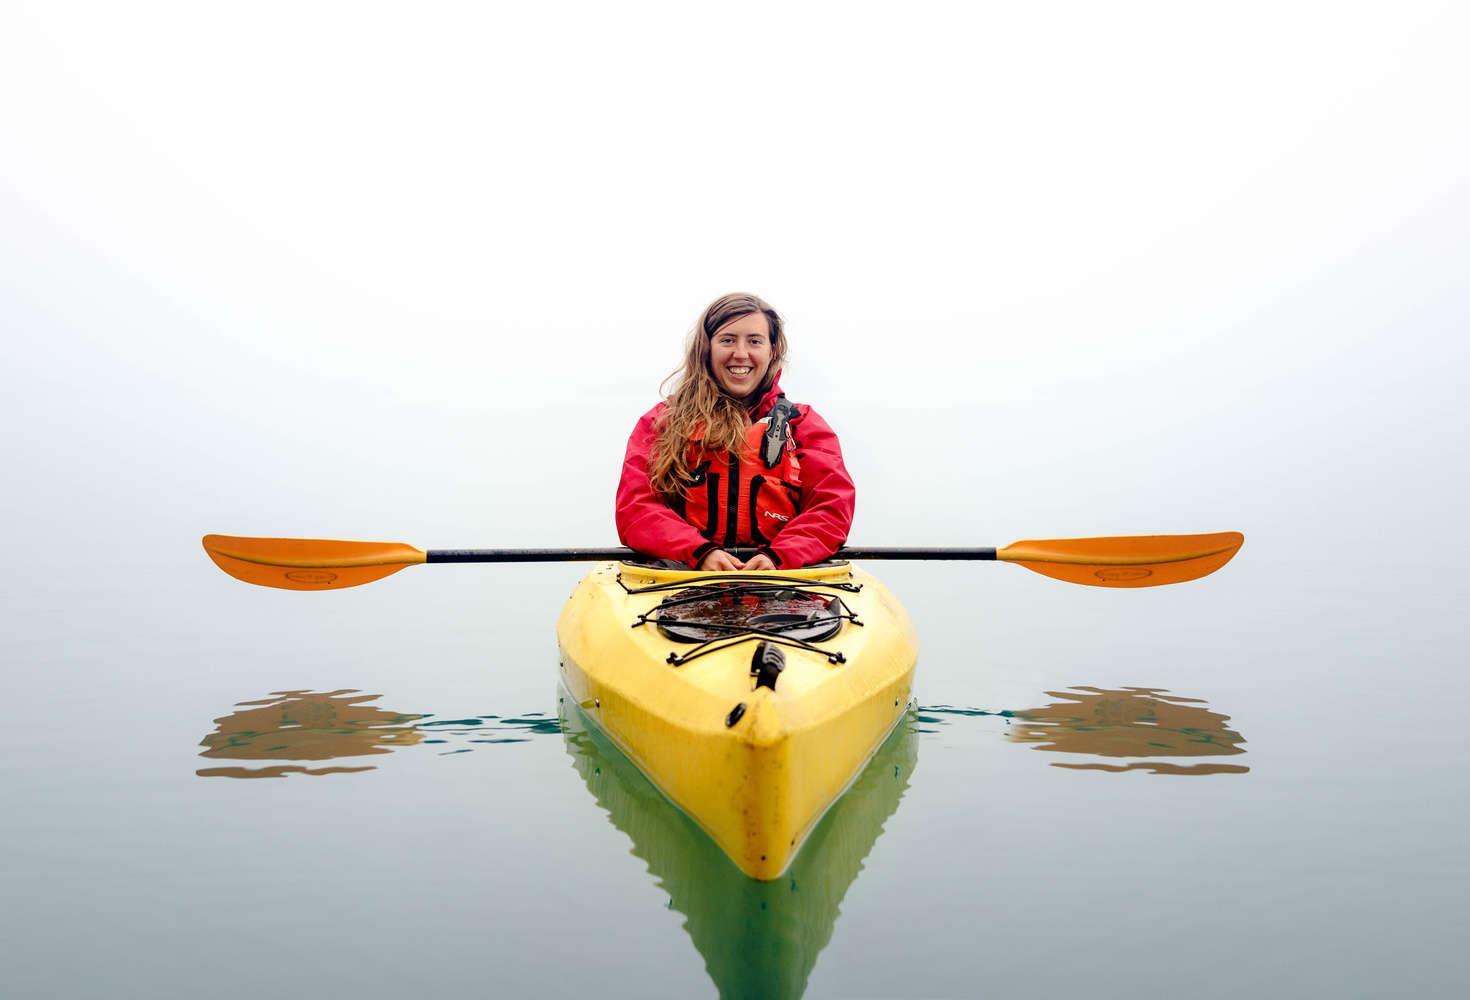 Kayaking in the Fog by TYLER YATES